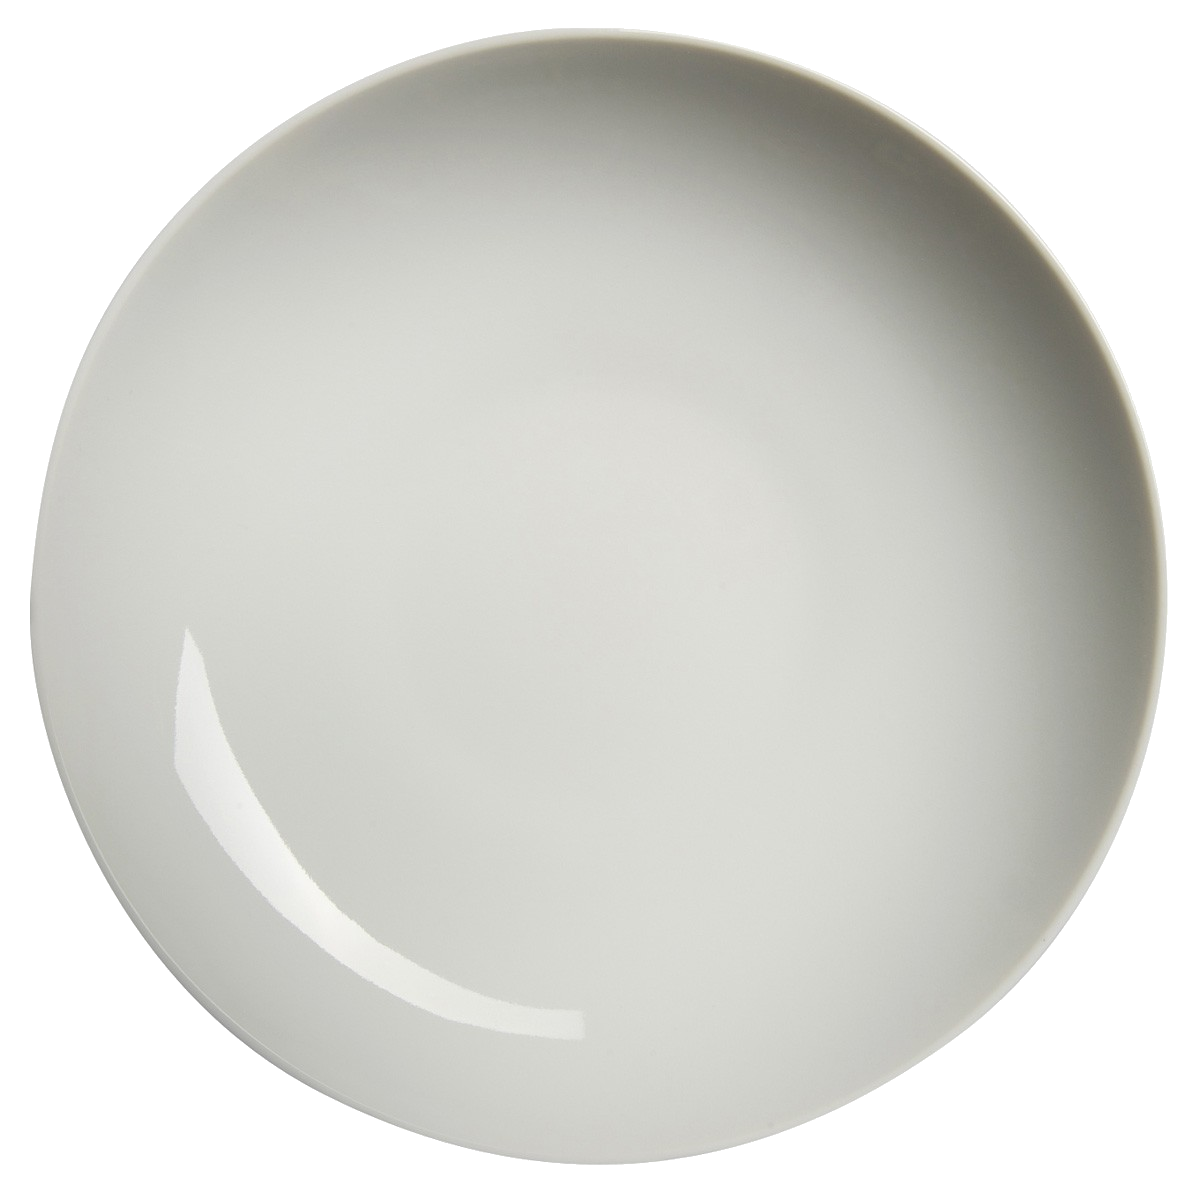 Now you can download Plates High Quality PNG